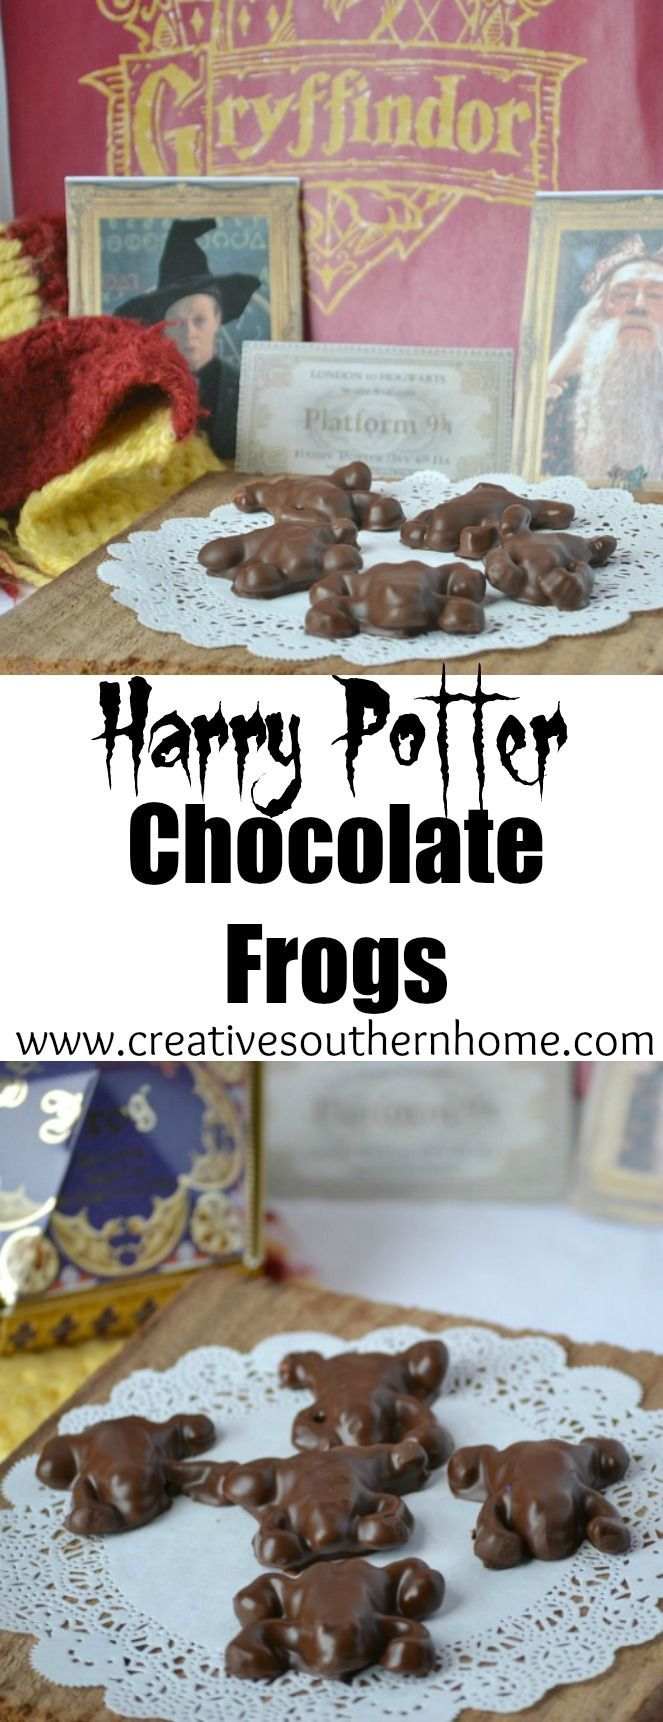 Easy way to make magical Harry Potter Chocolate Frogs.